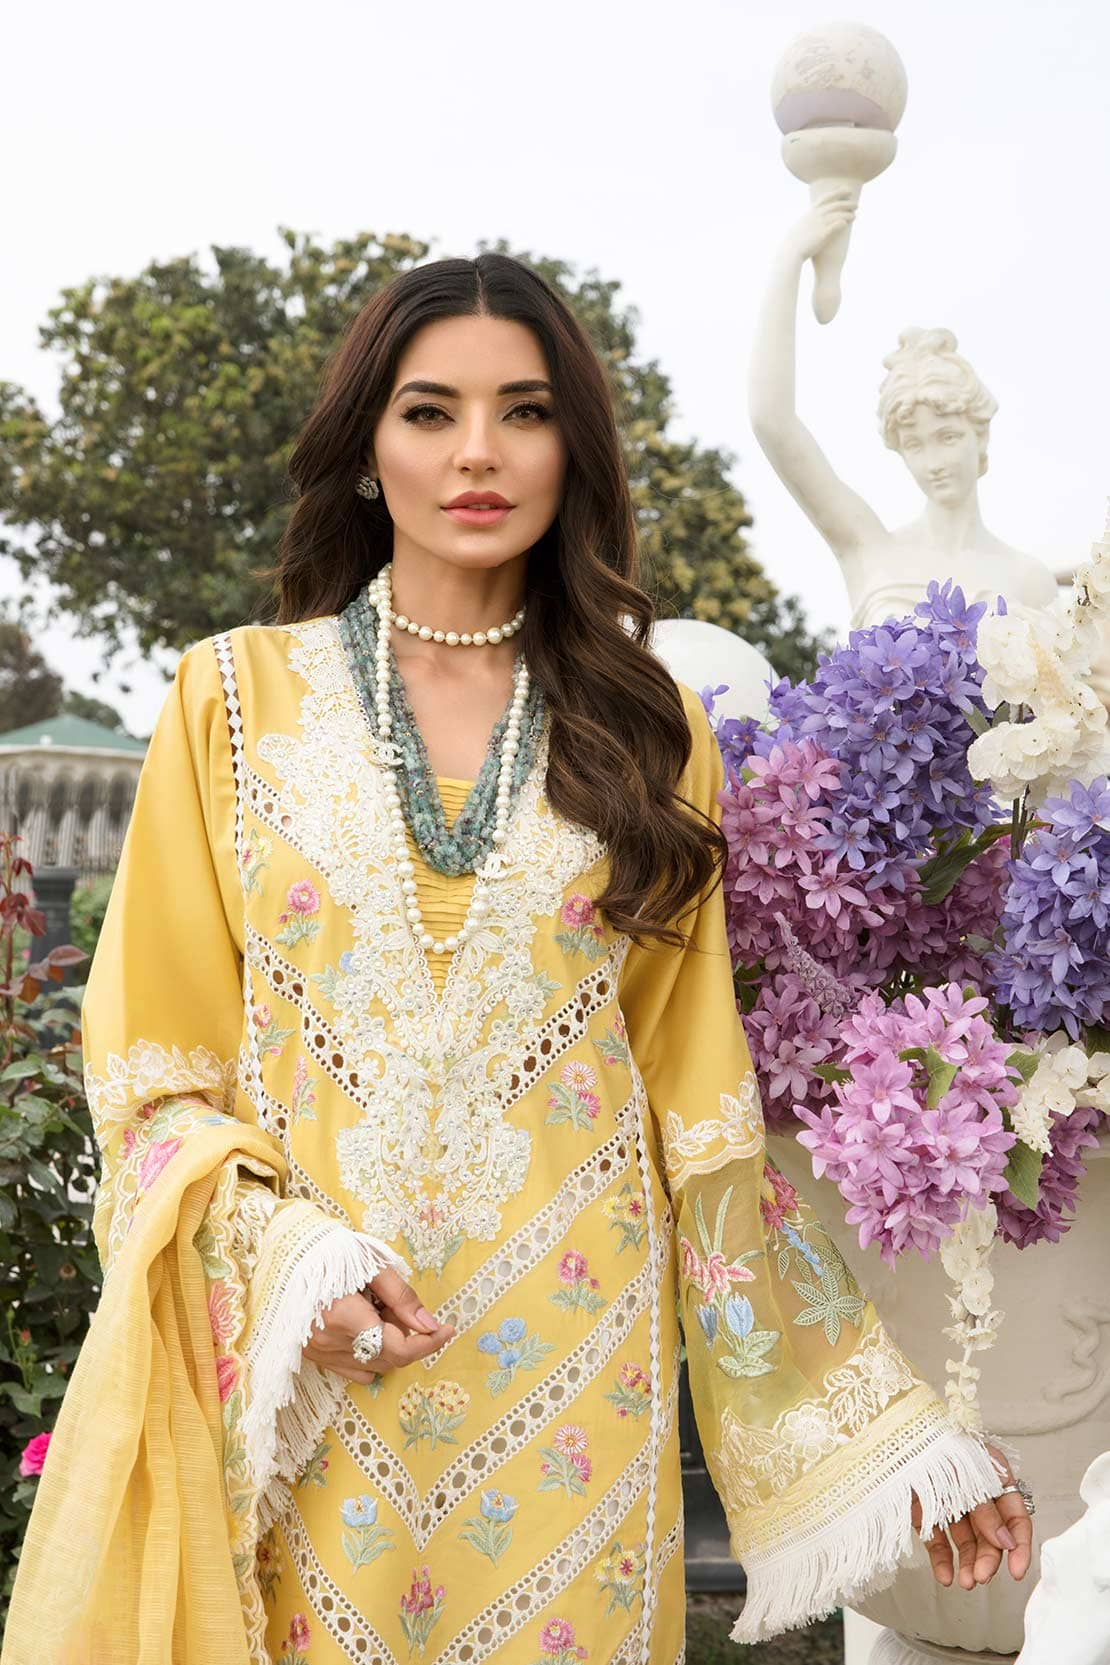 CRIMSON BY SAIRA SHAKIRA   LUXURY SUMMER Collection'21   6B AMBER A FLORAL